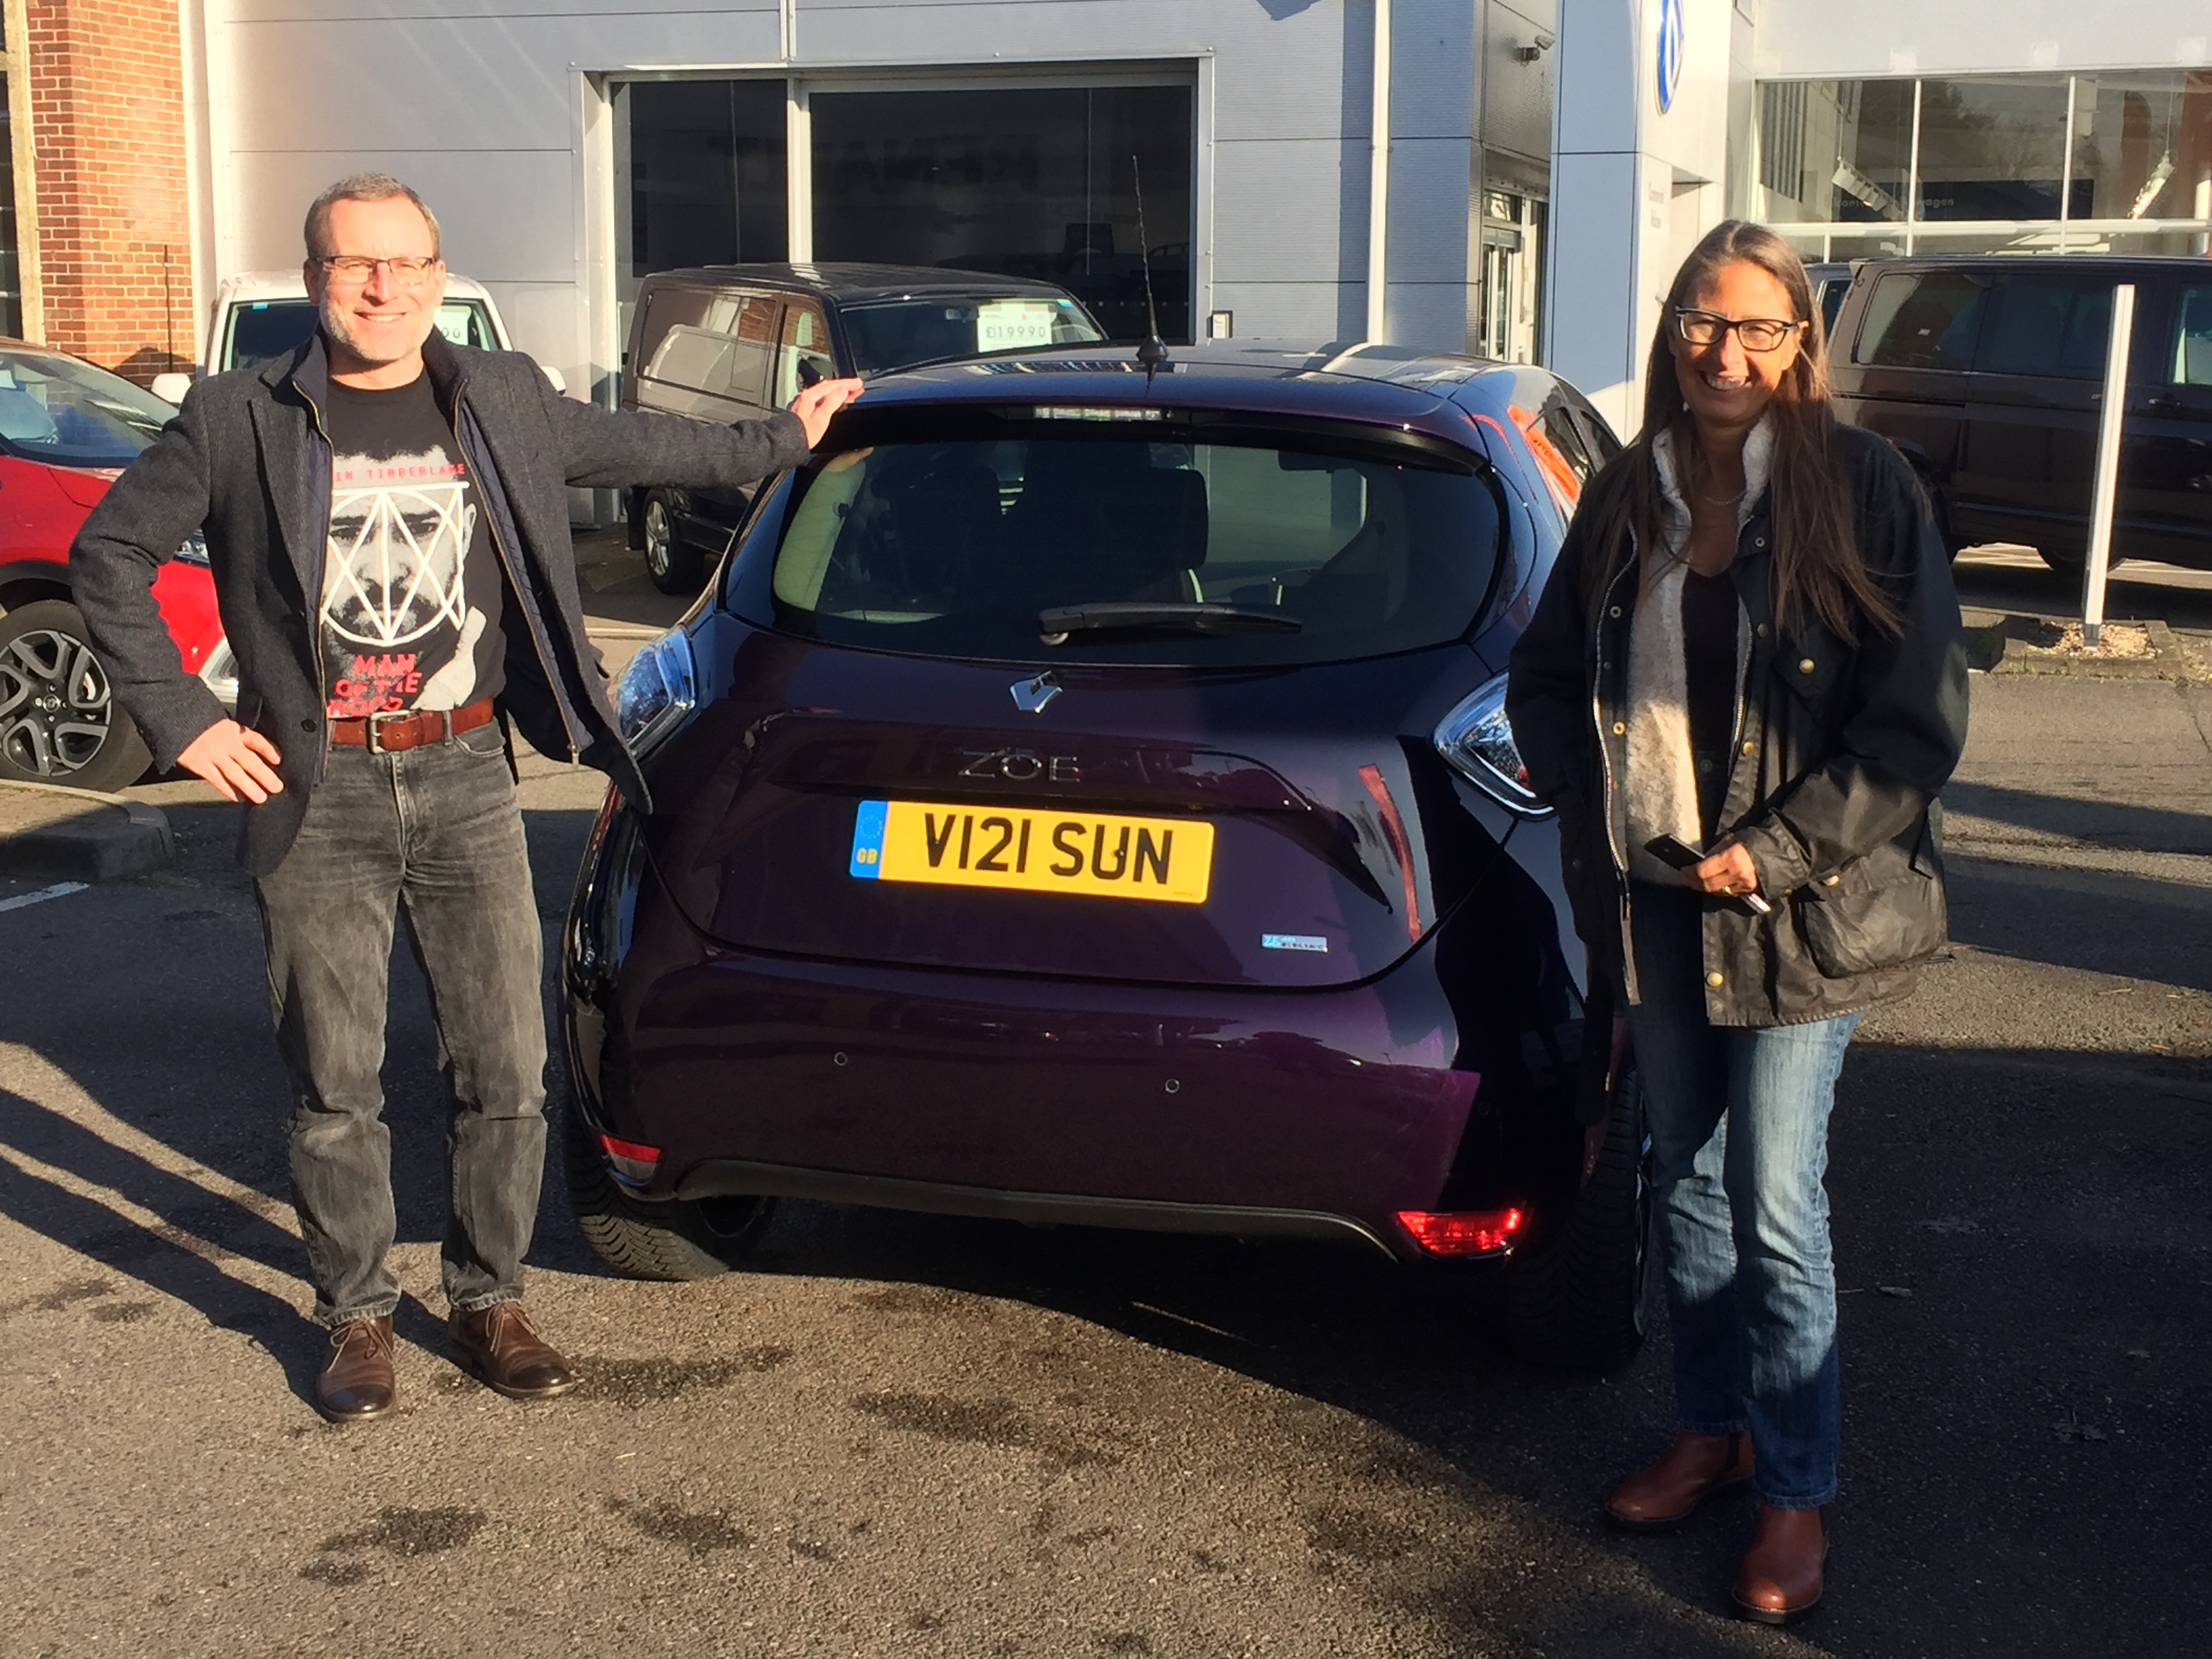 Lars and Helene standing to the rear of their purple electric car, smiling happily with their purchase